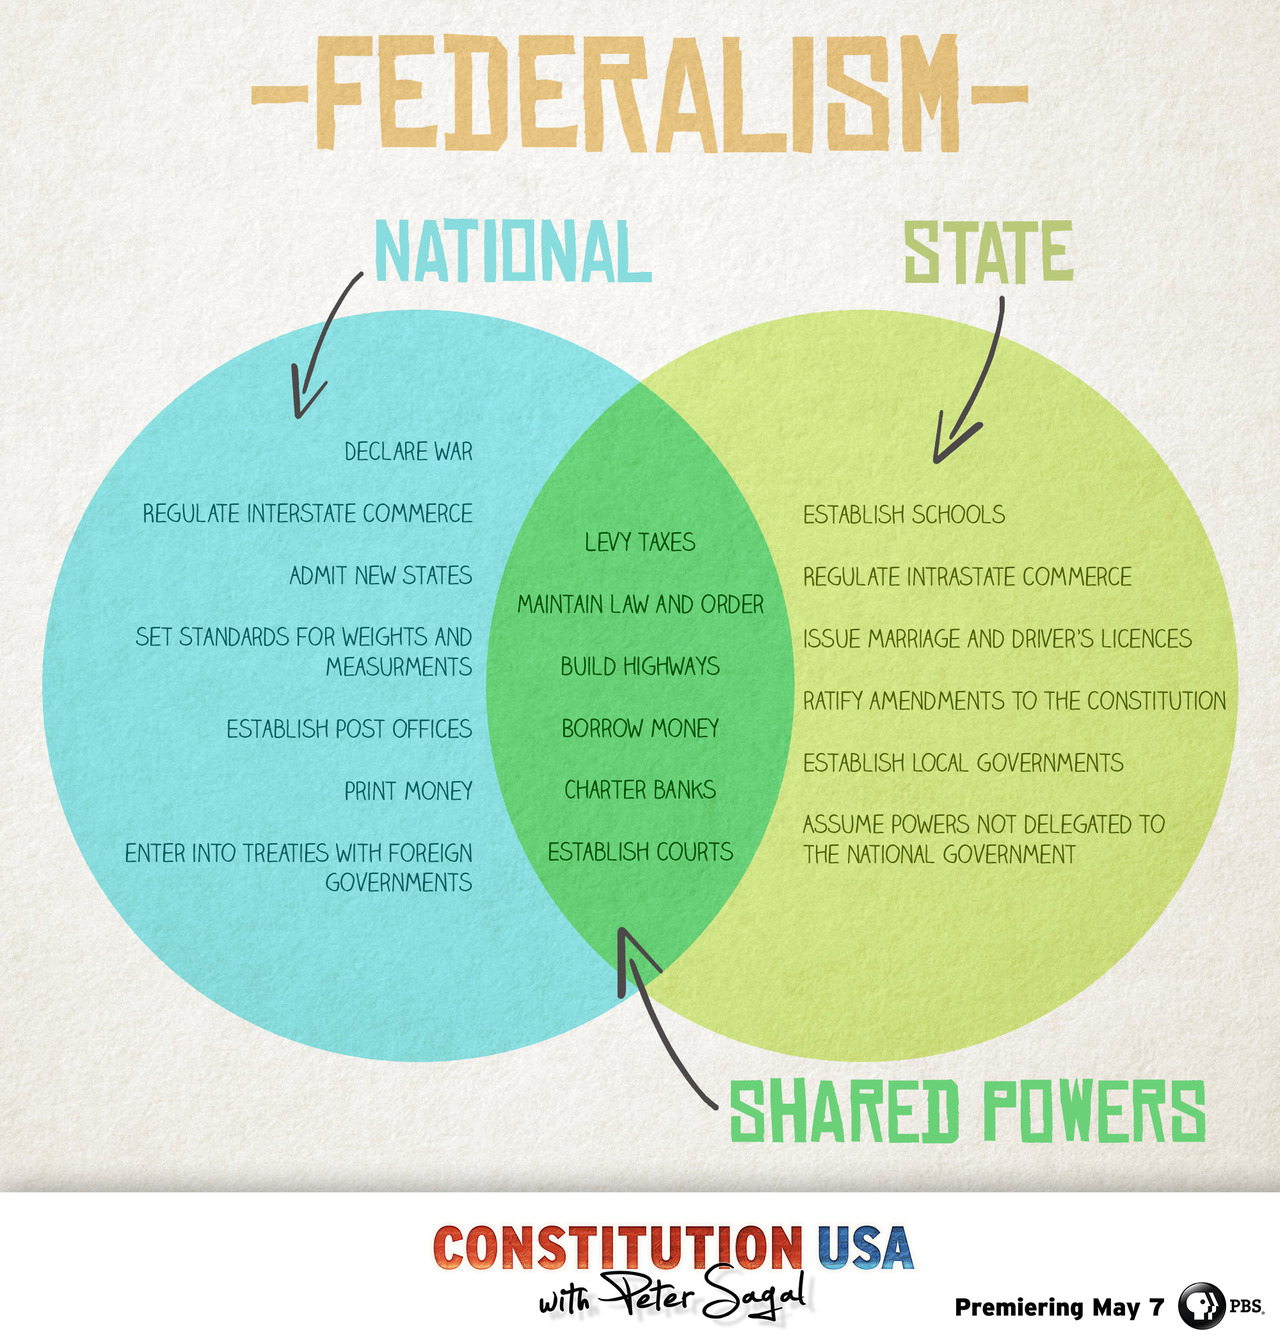 Us History clipart federal government Federalism this the 121 what